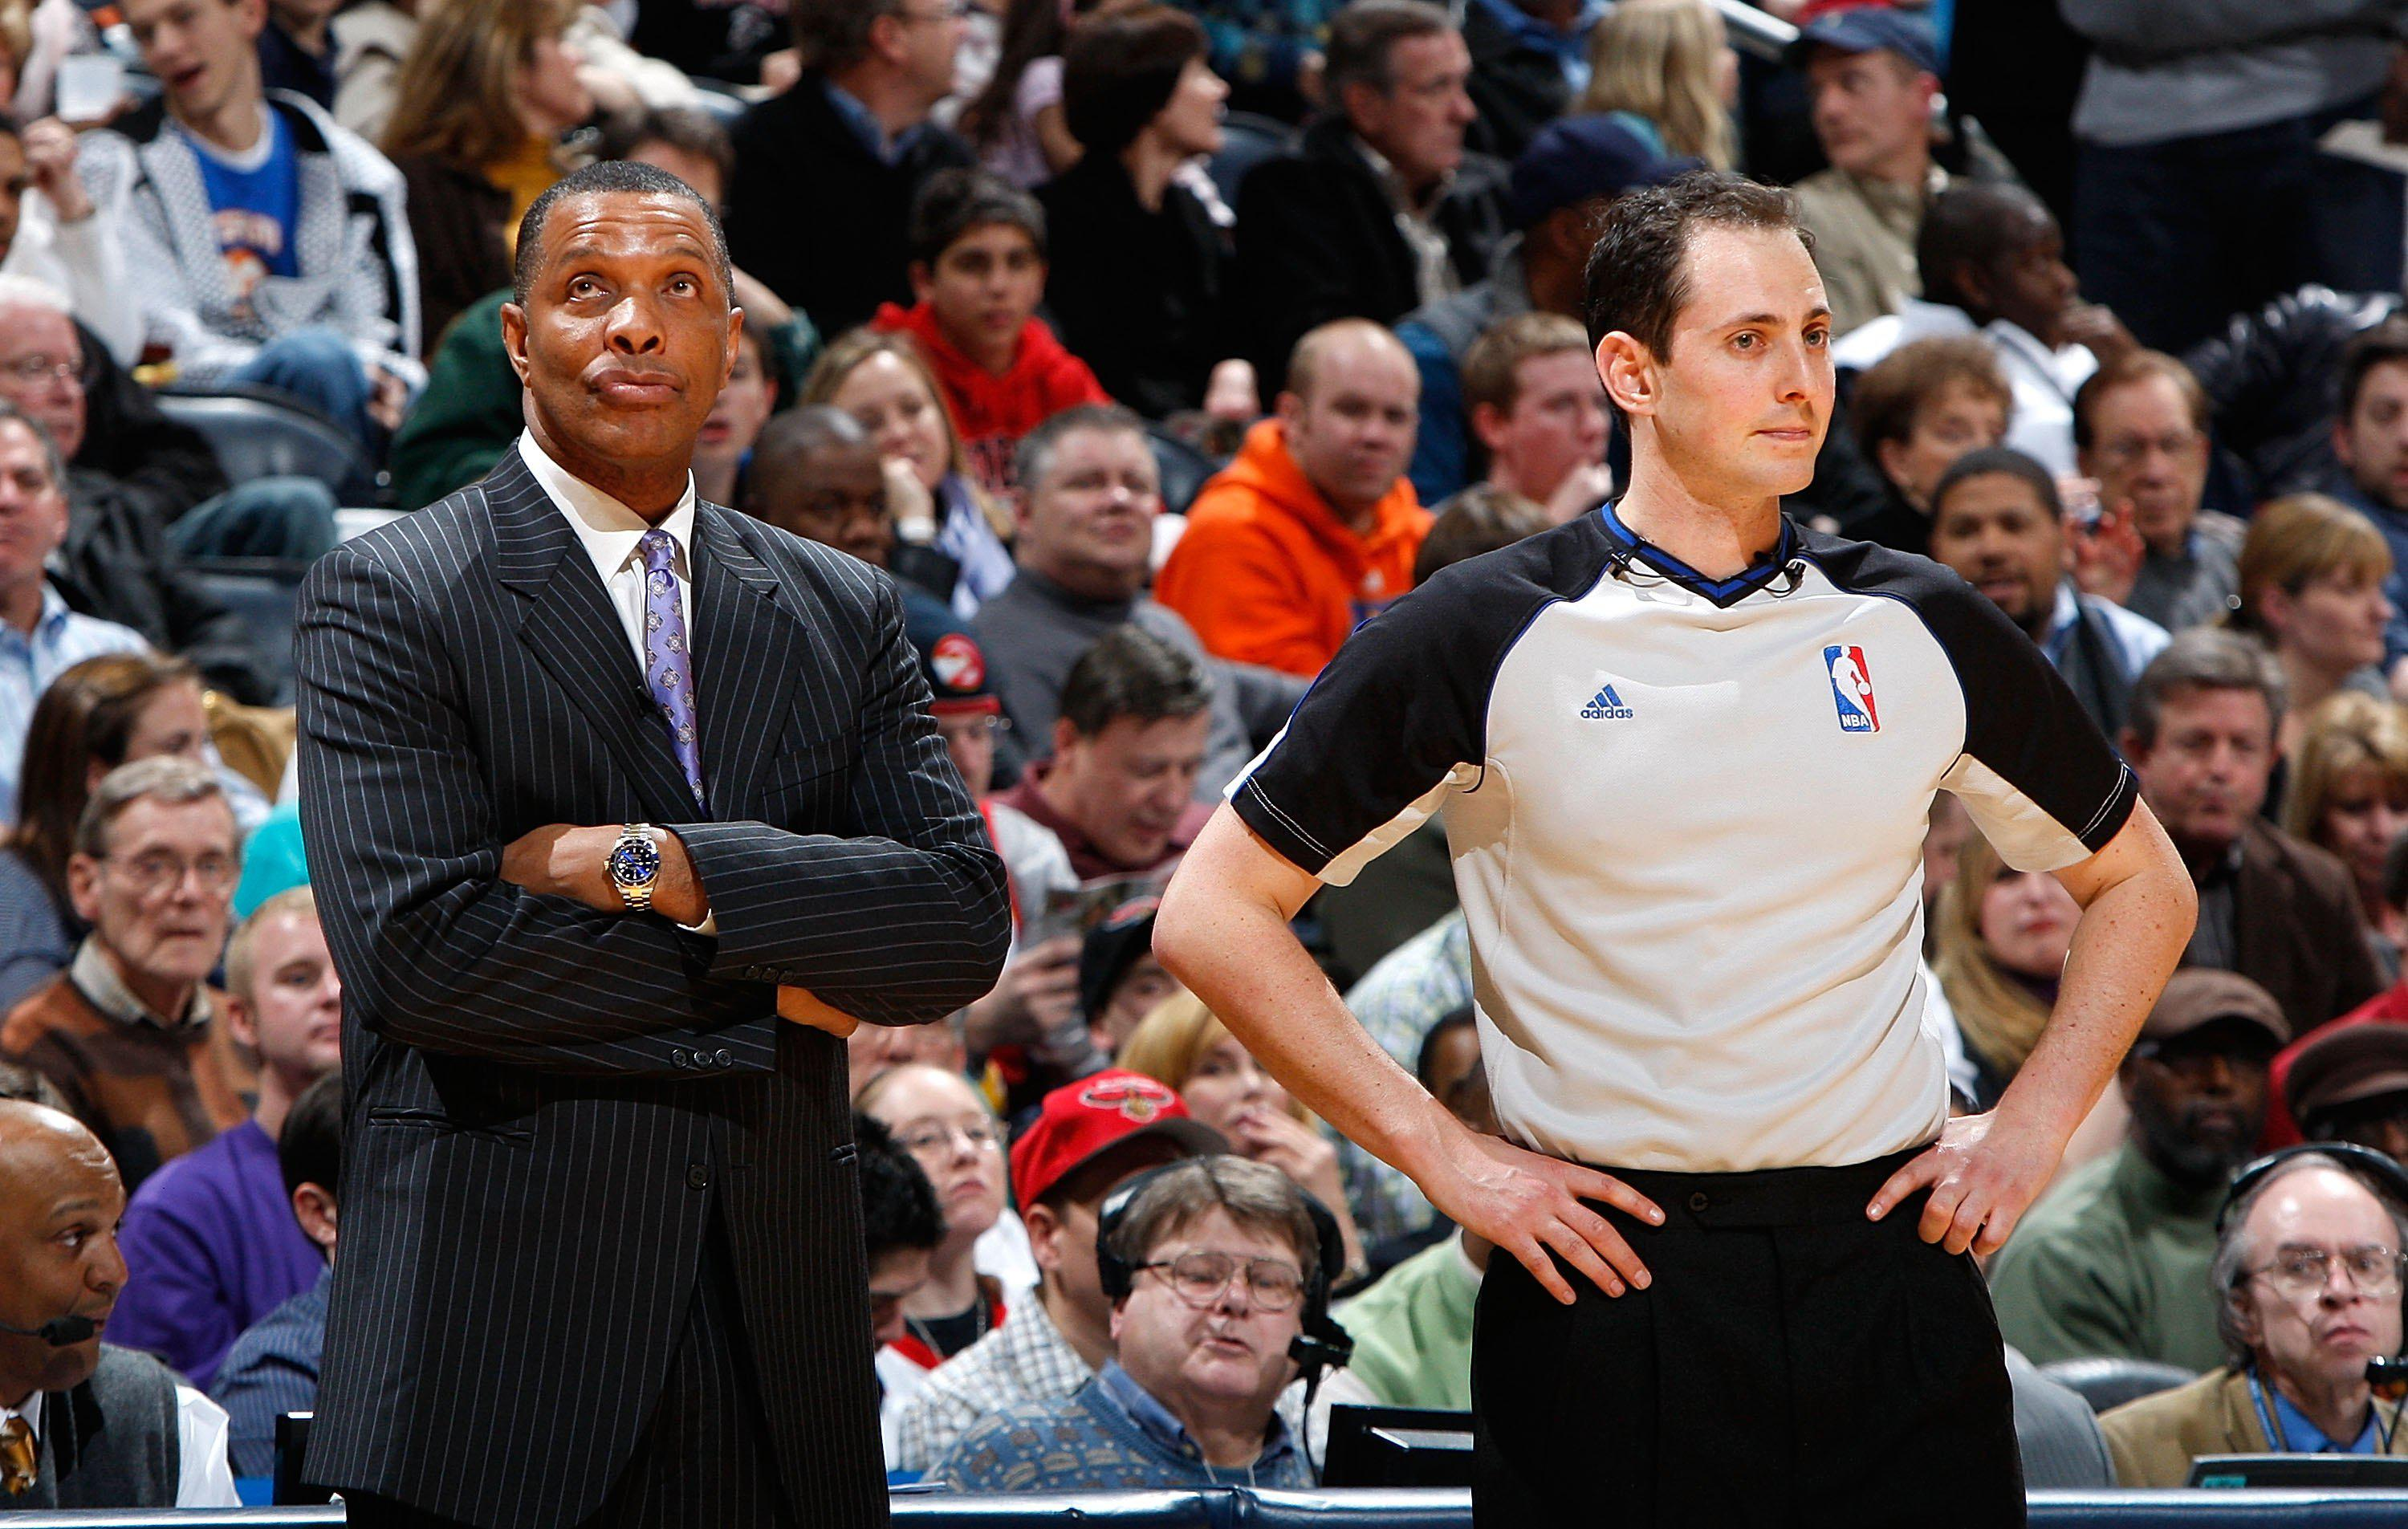 ATLANTA - JANUARY 15:  Head coach Alvin Gentry of the Phoenix Suns and referee Marat Kogut #68 (R) against the Atlanta Hawks at Philips Arena on January 15, 2010 in Atlanta, Georgia.  NOTE TO USER: User expressly acknowledges and agrees that, by downloading and/or using this Photograph, User is consenting to the terms and conditions of the Getty Images License Agreement.  (Photo by Kevin C. Cox/Getty Images)